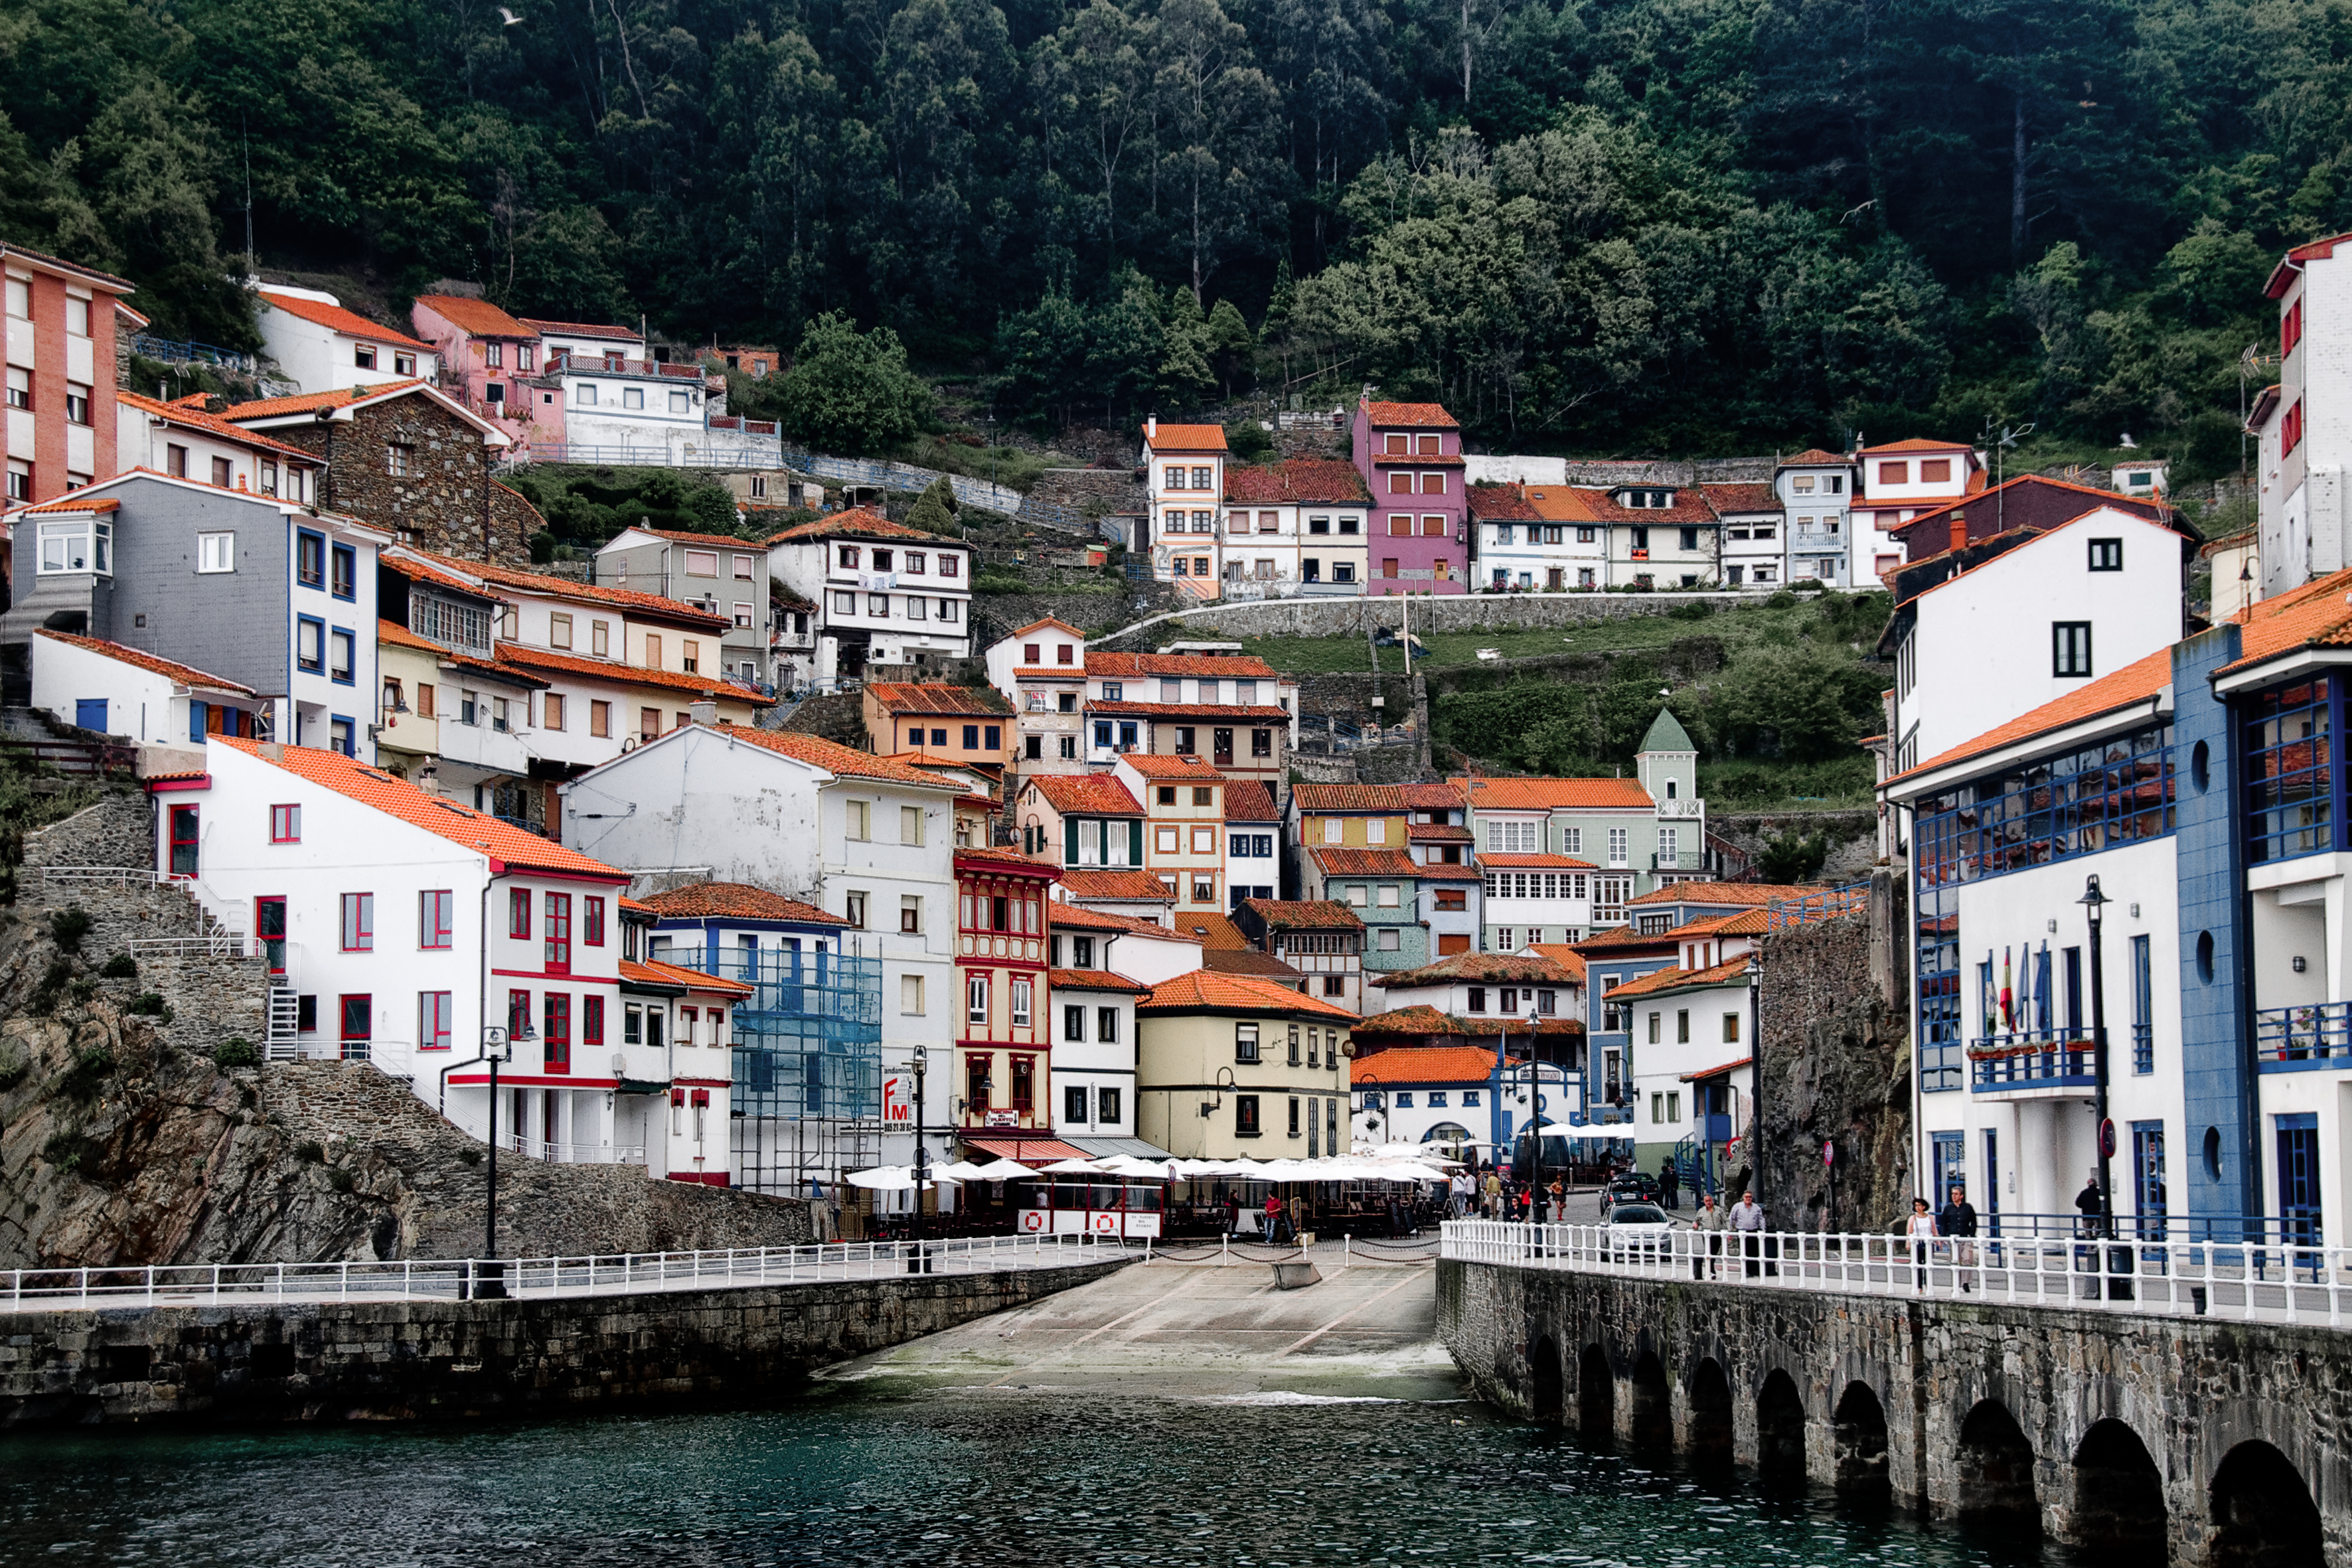 Asturias (Leyenda), named simply Leyenda by its composer, is a musical work by the Spanish.